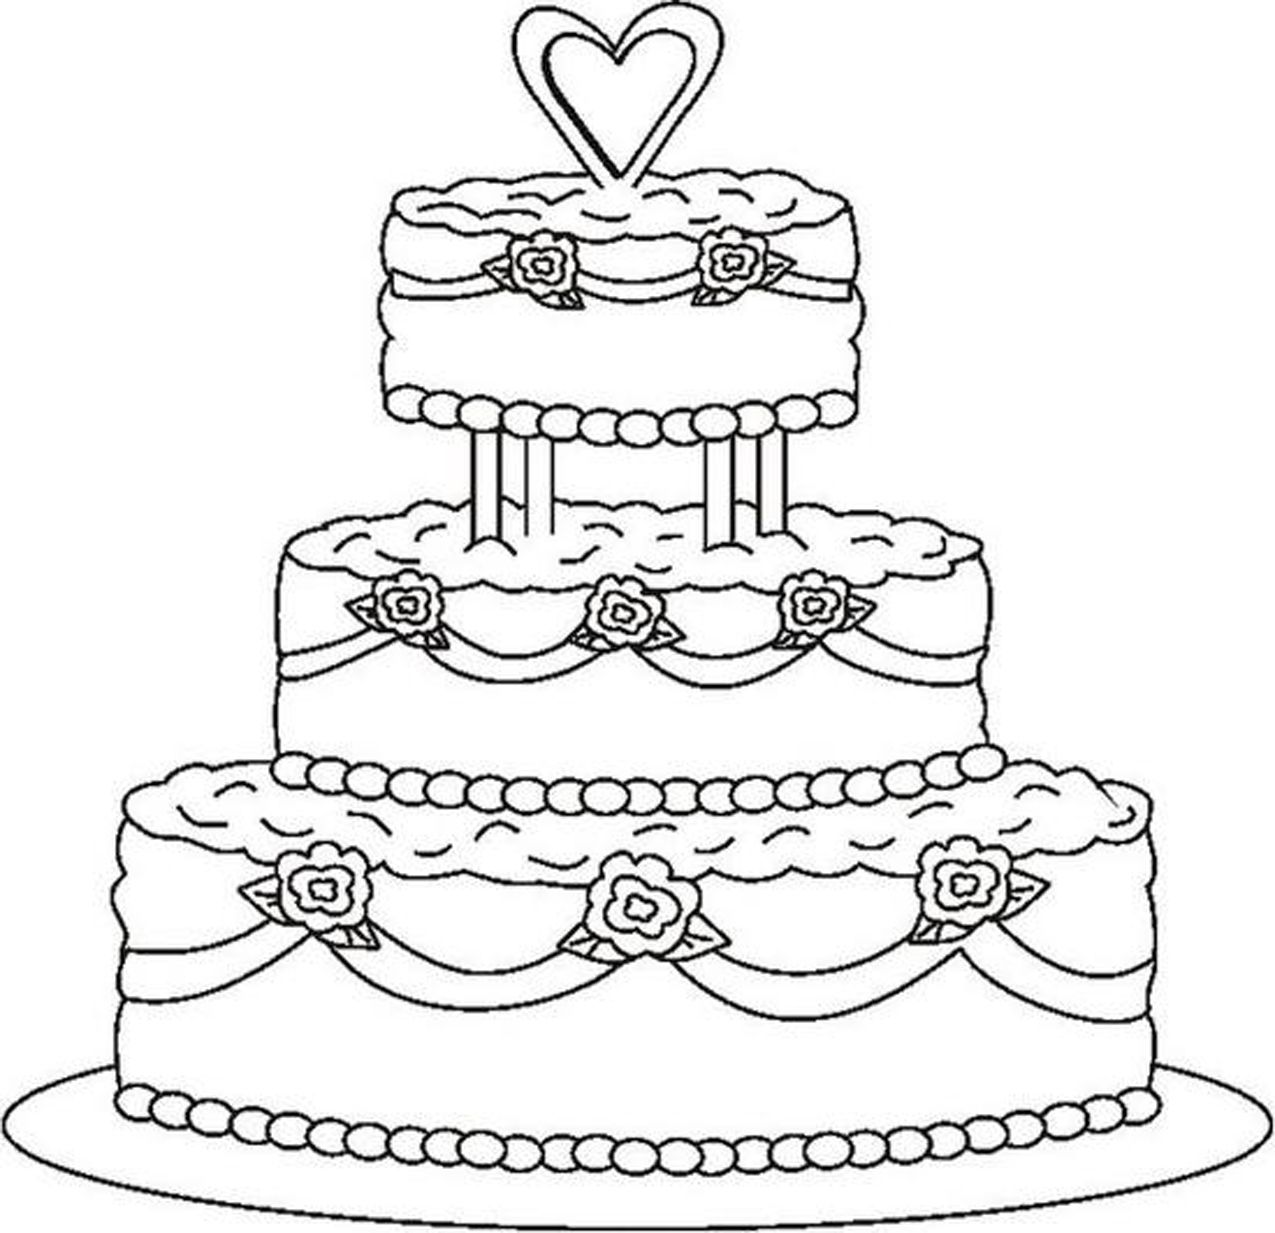 coloring cake pictures free printable birthday cake coloring pages for kids coloring cake pictures